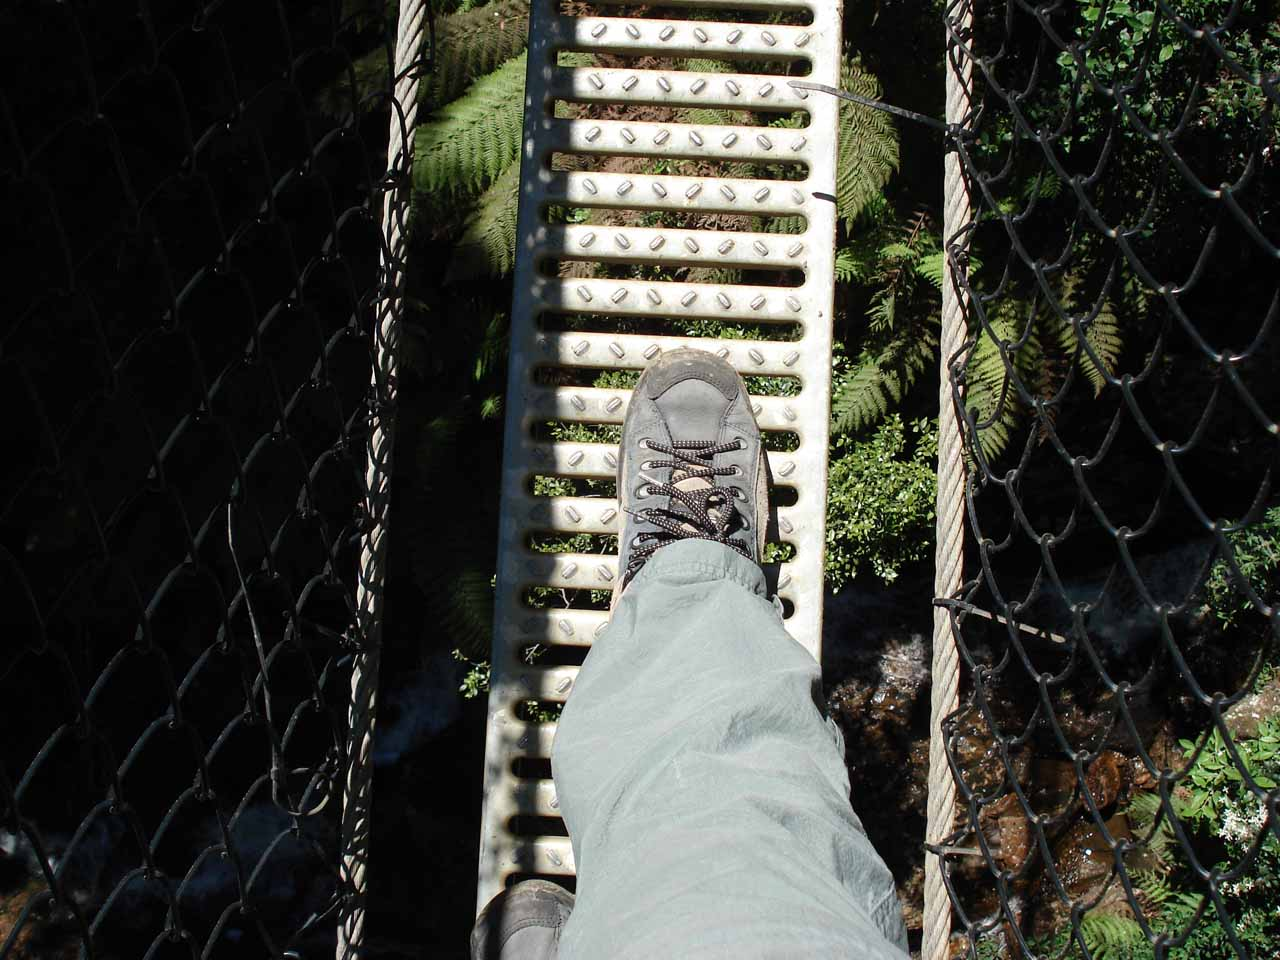 The suspension bridge was barely wide enough to accommodate the width of both of Julie's feet